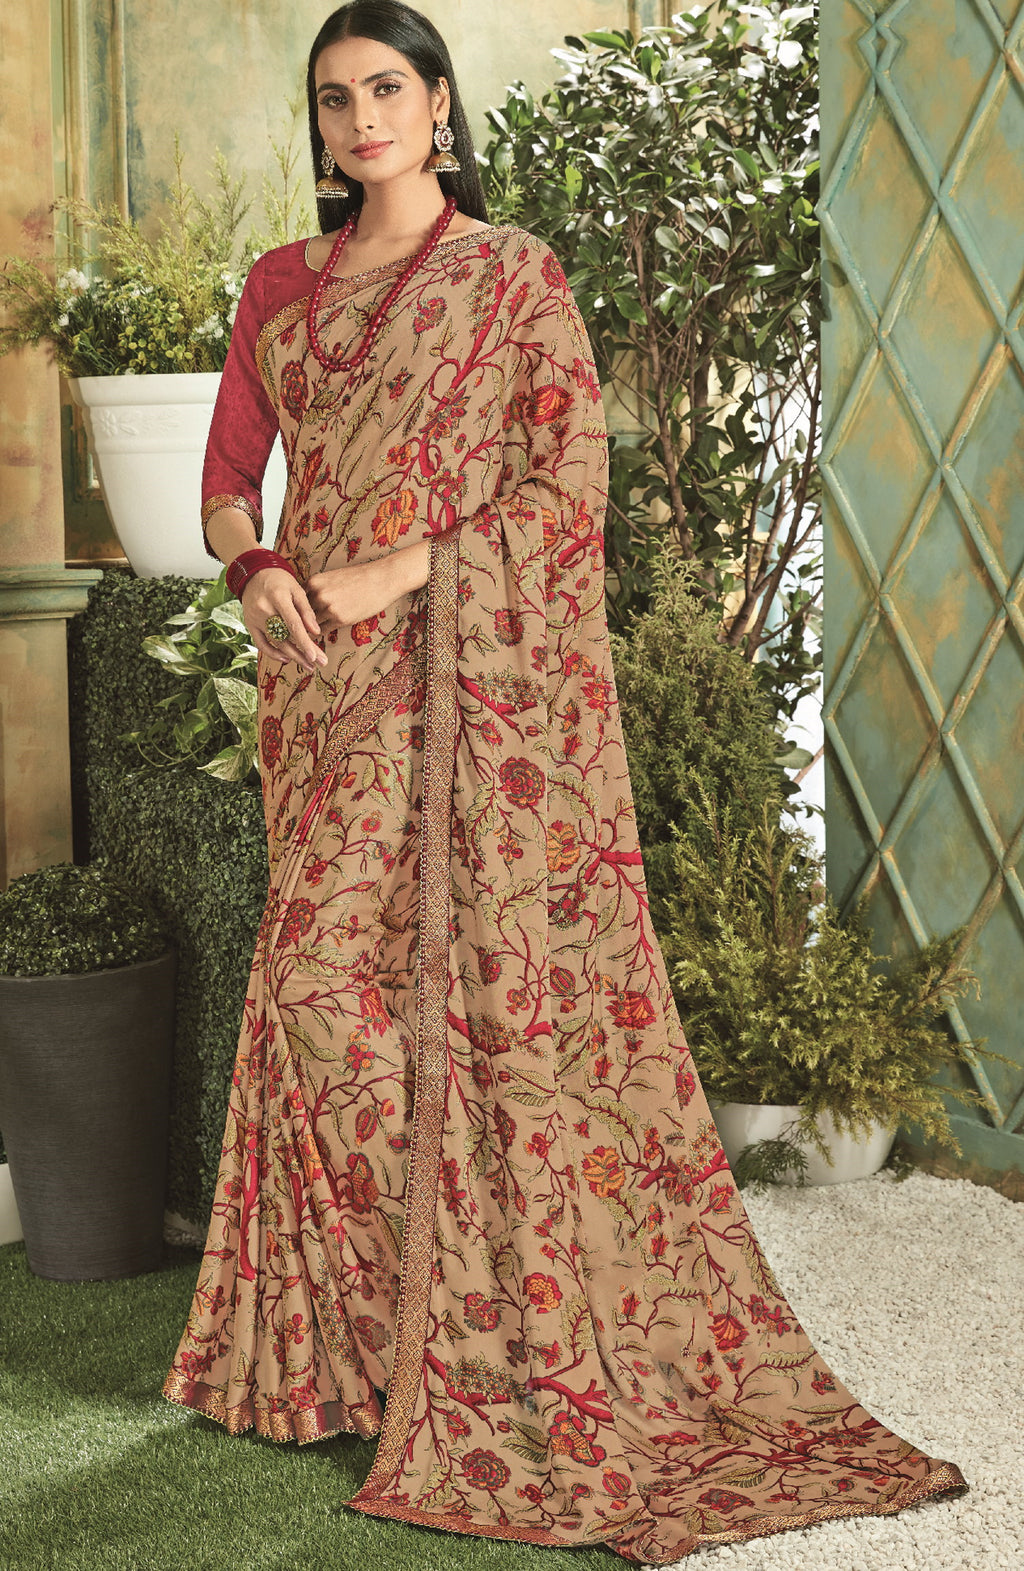 Beige Color Georgette Youthful Kitty Party Sarees NYF-5673